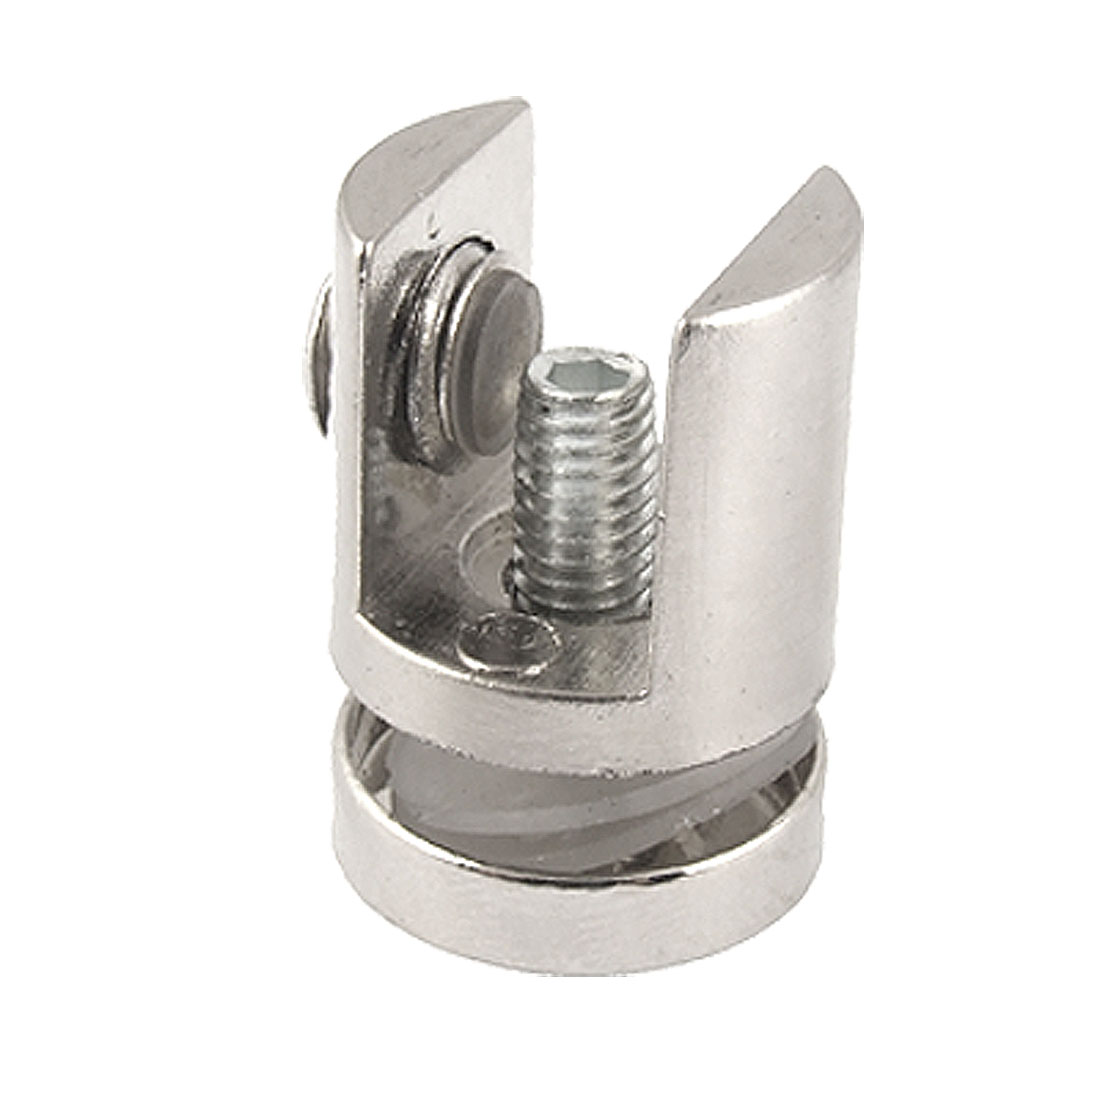 Bathroom Shelf 8-12mm Thickness Glass Metal Holder Clip